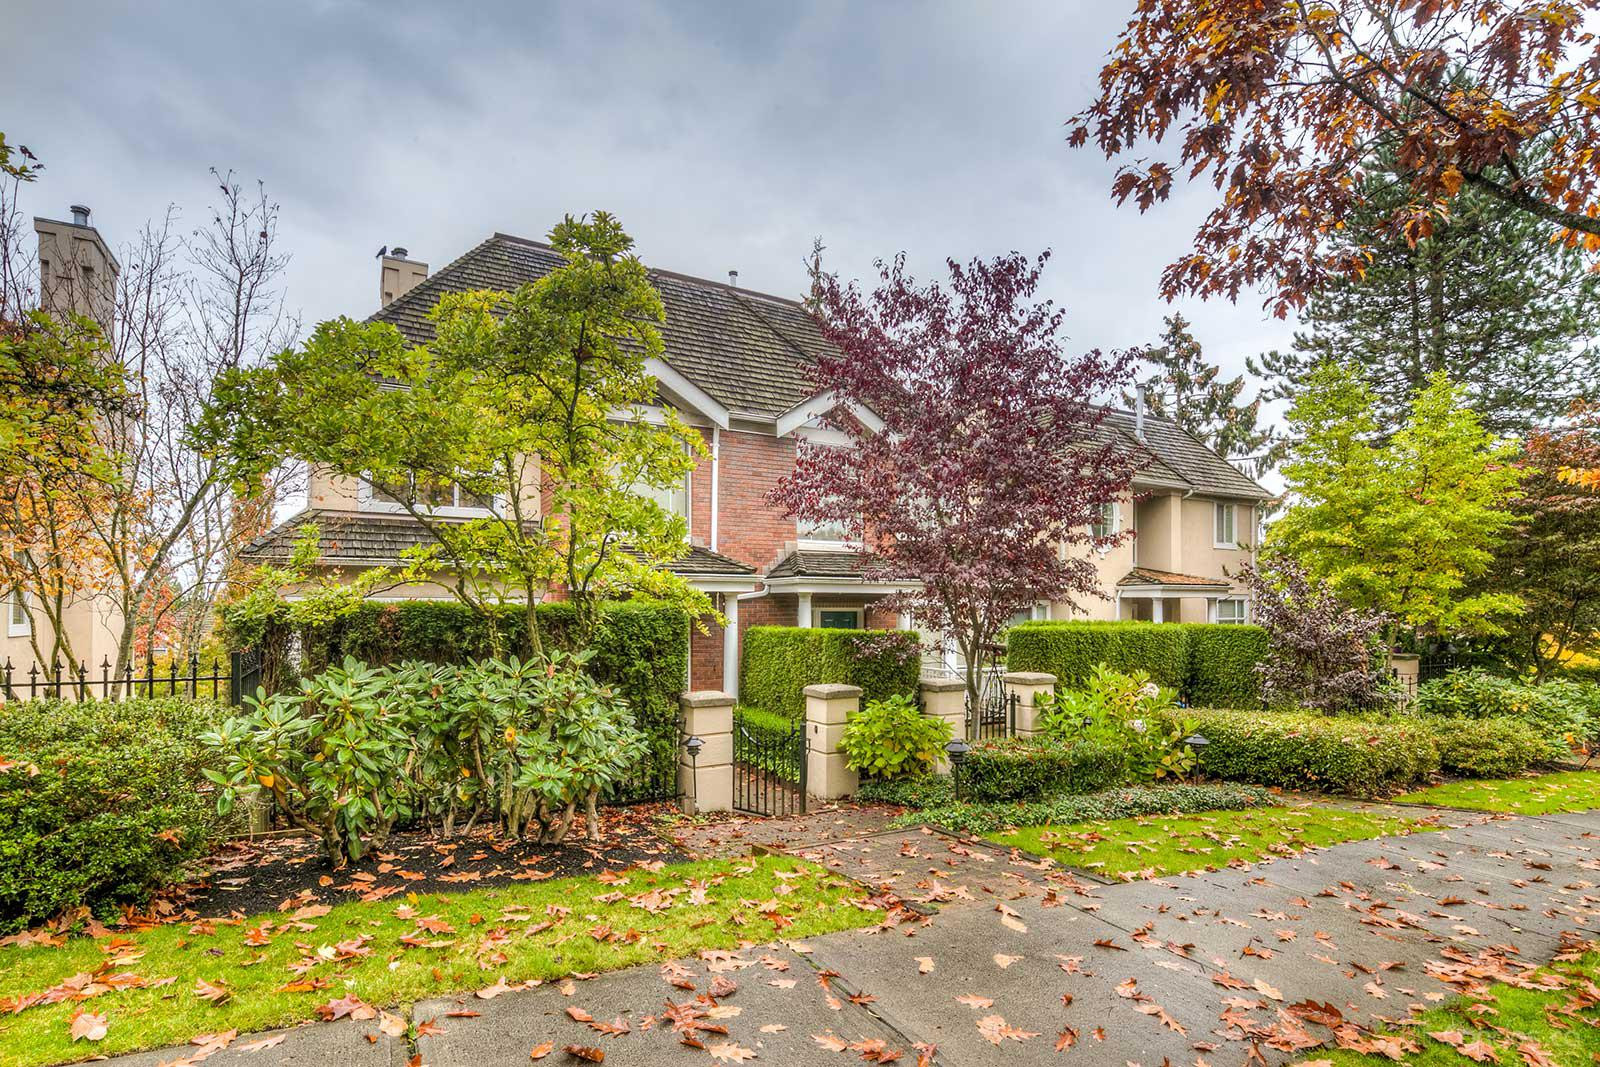 St. Andrews at 5262 Oakmount Crescent, Burnaby 0